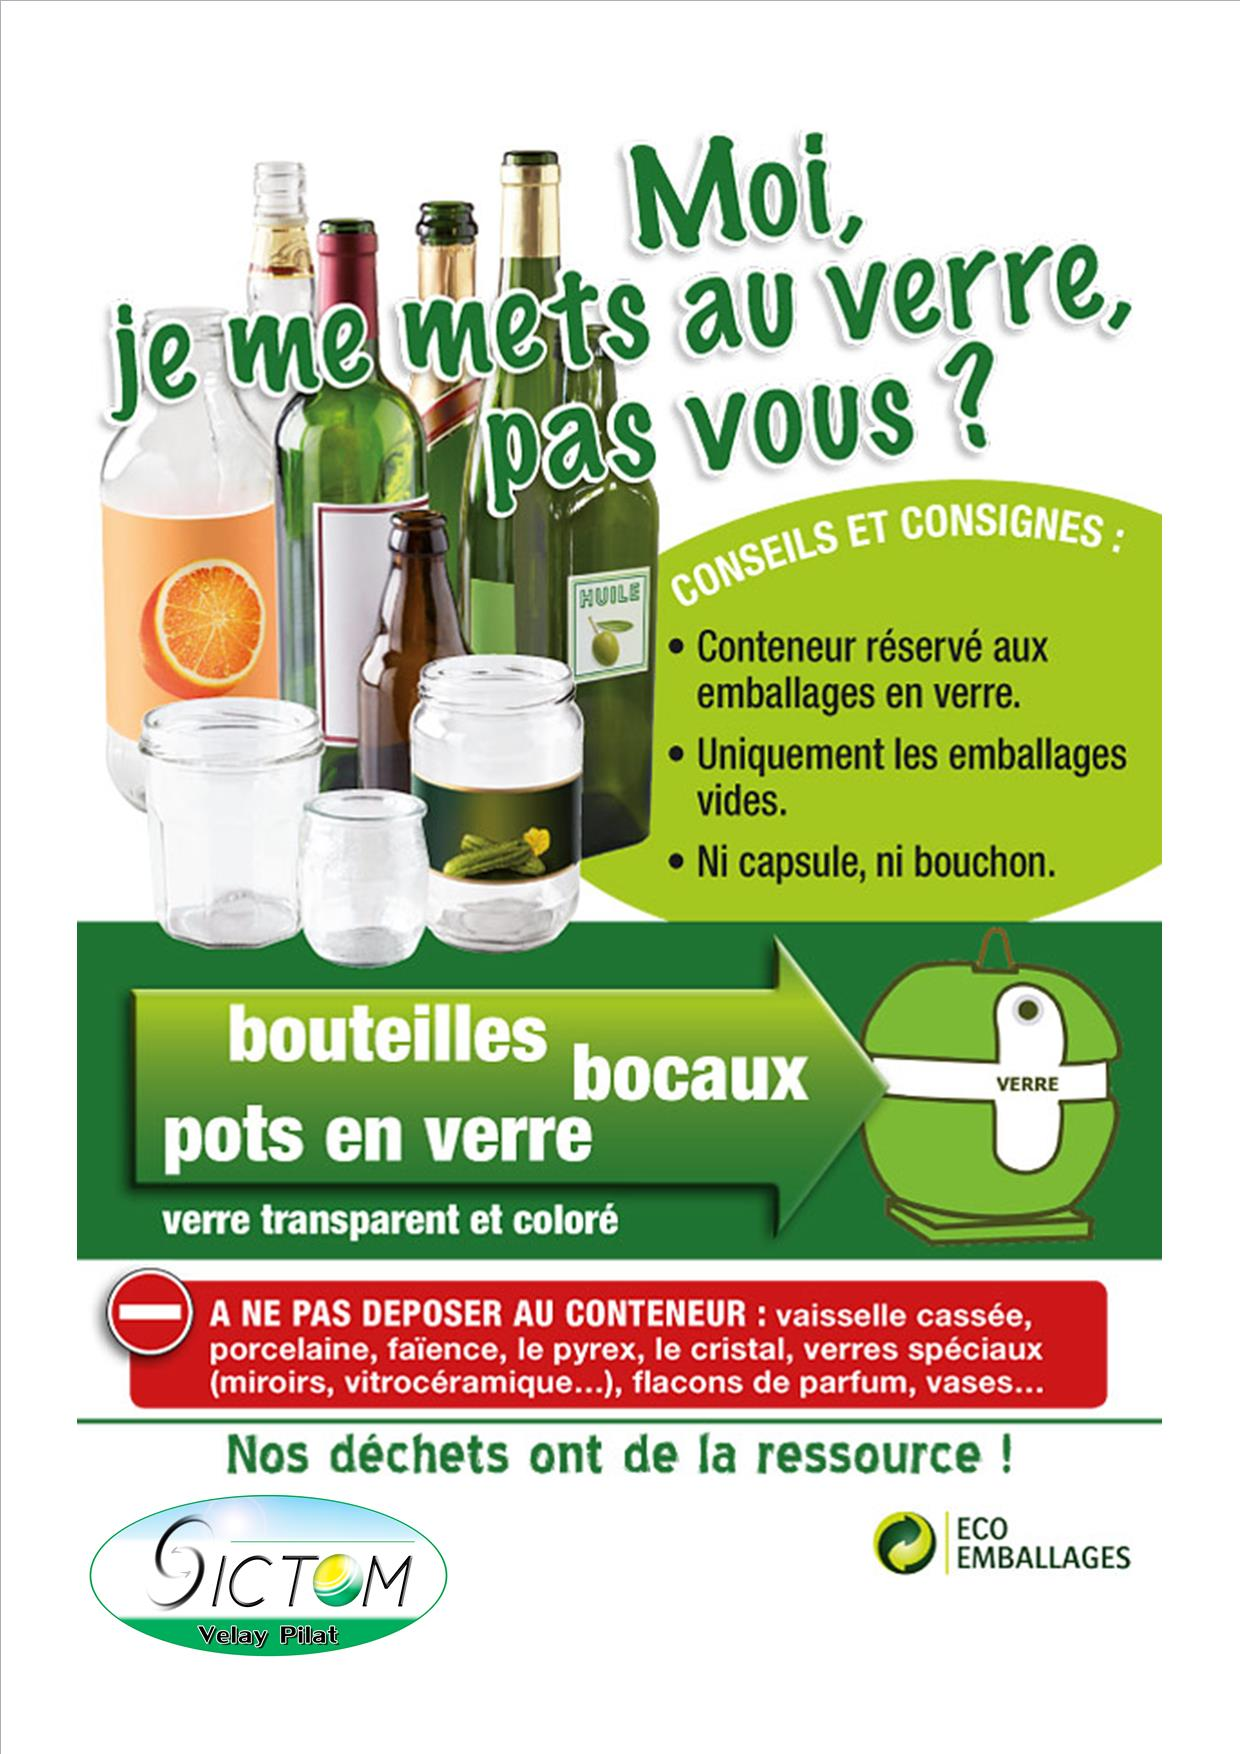 Recyclage verre